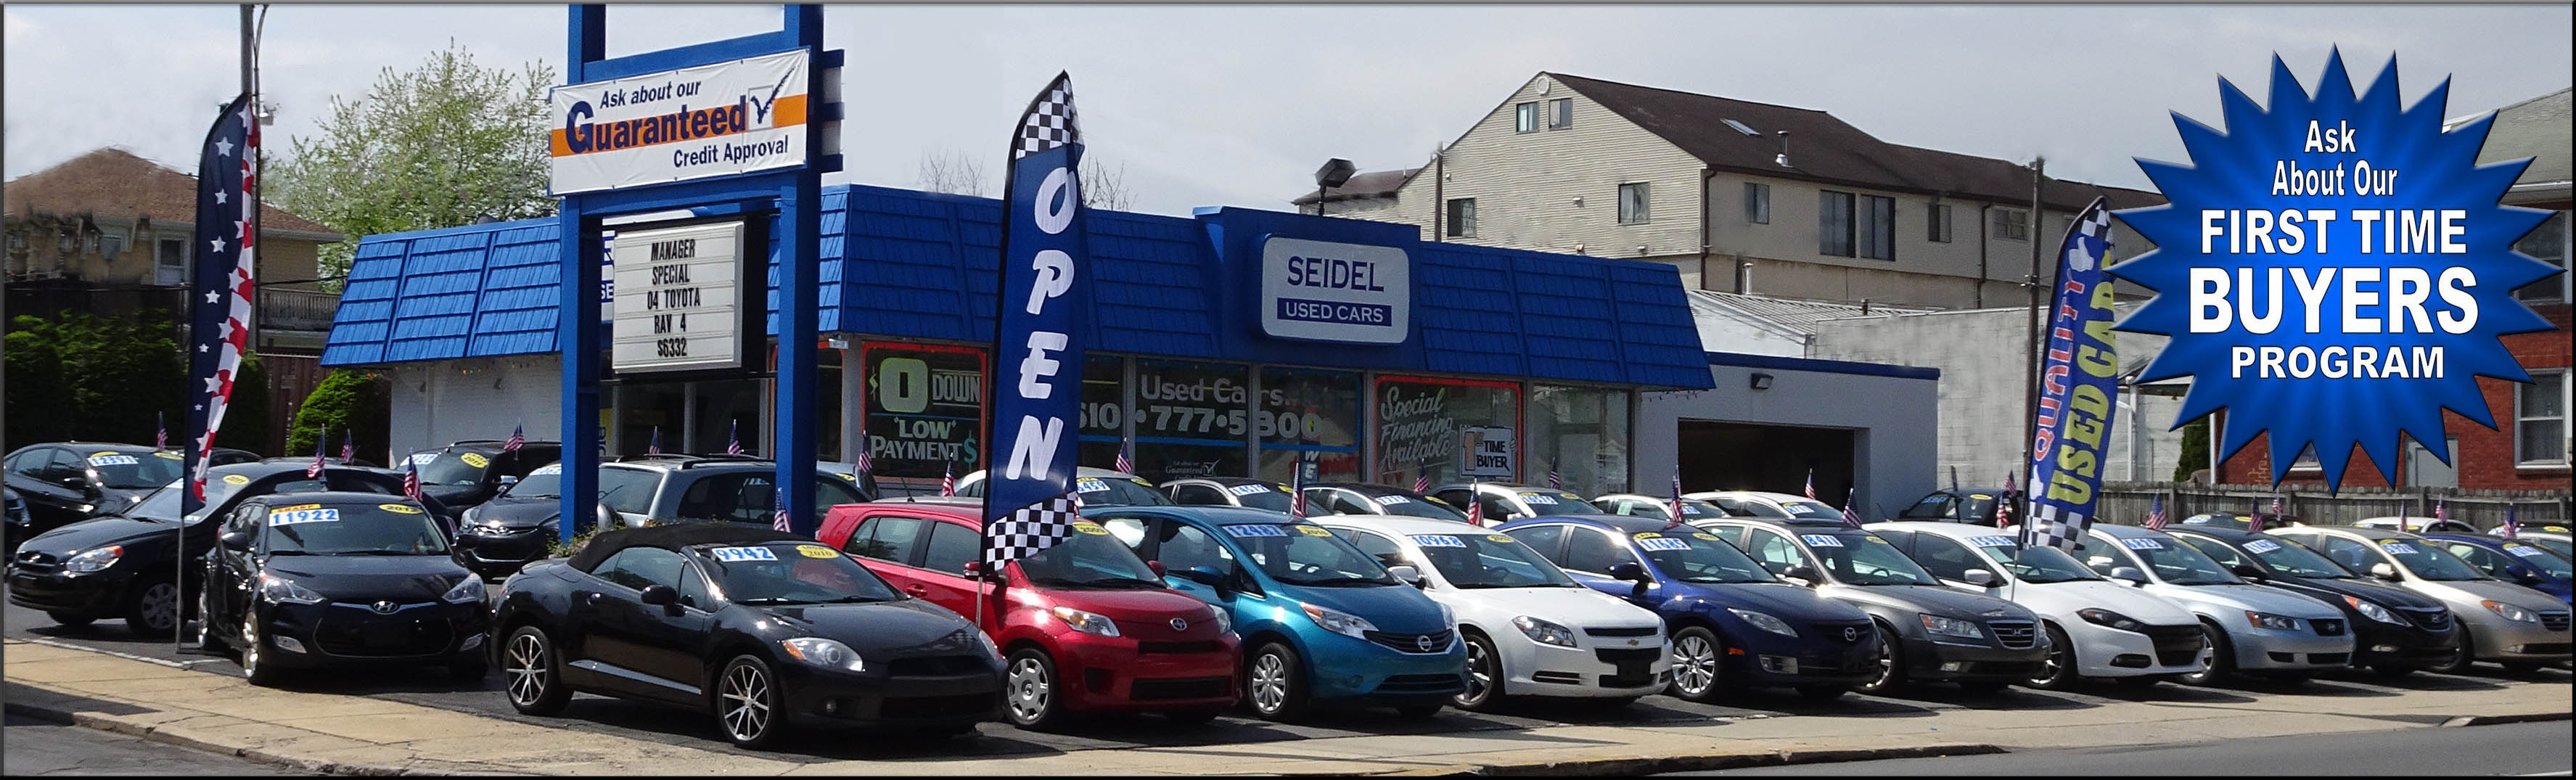 seidel used cars lancaster ave reading pa seidel guaranteed credit approval seidel first time er s program